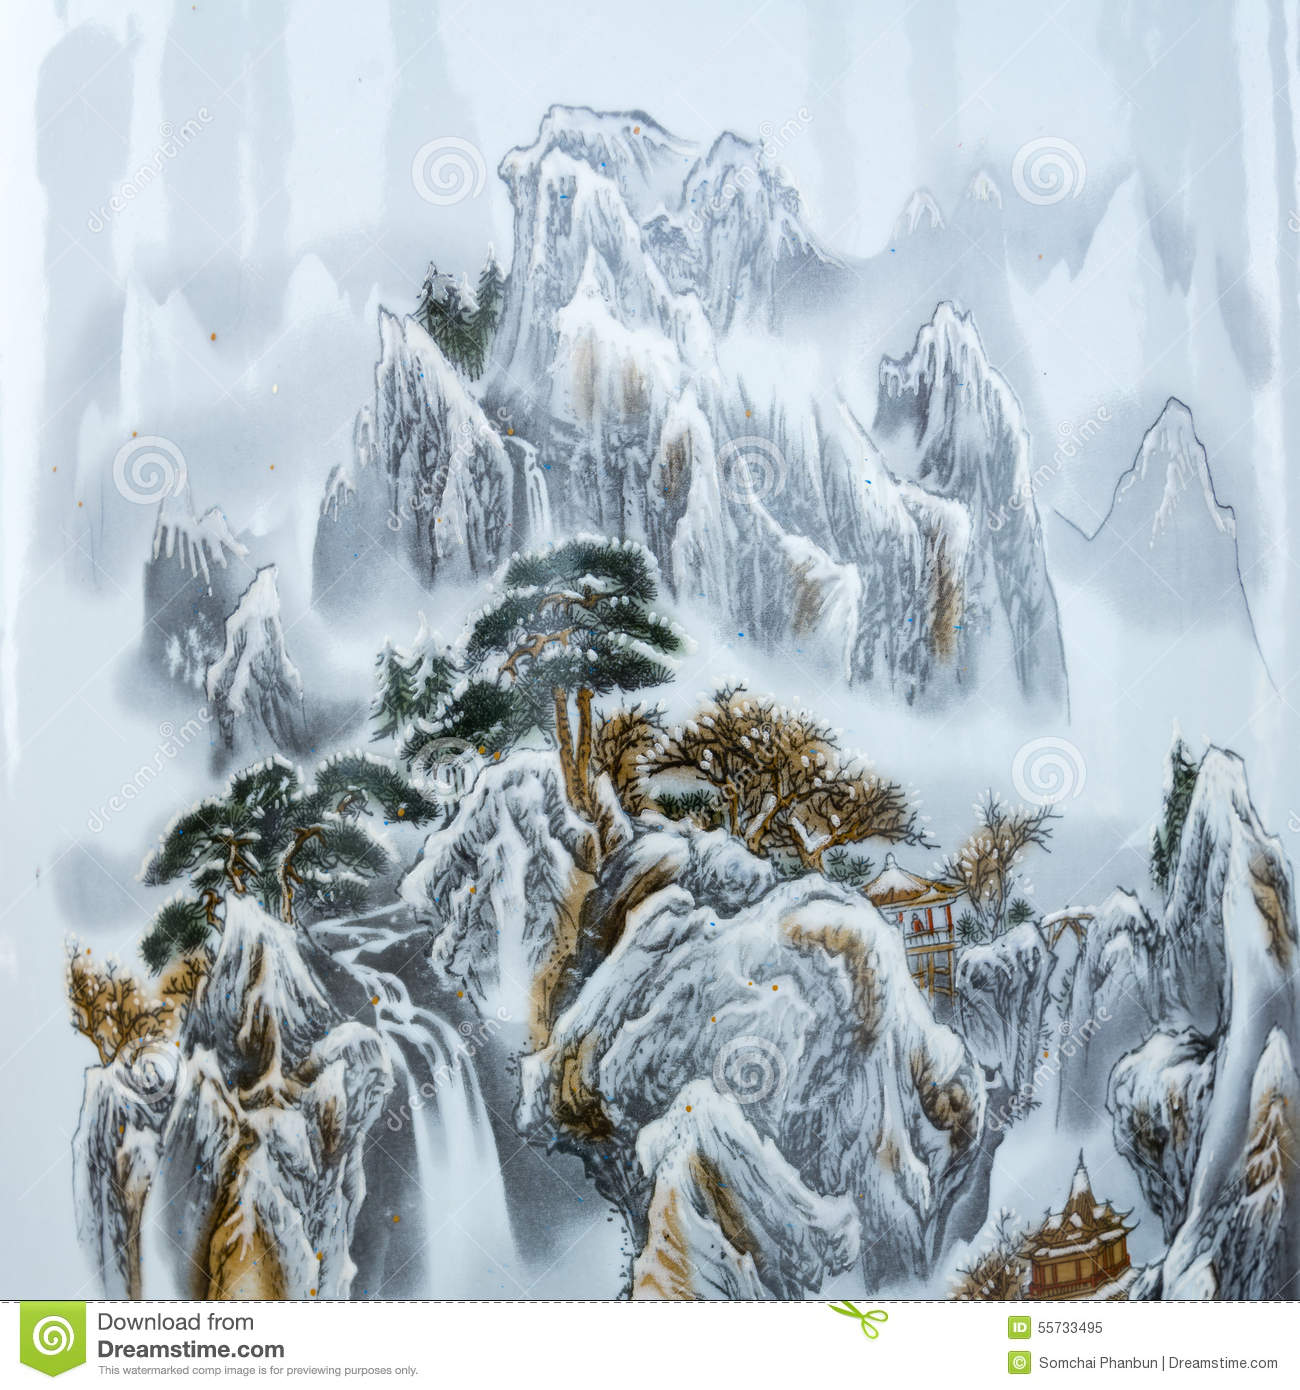 Chinese paintings of mountains